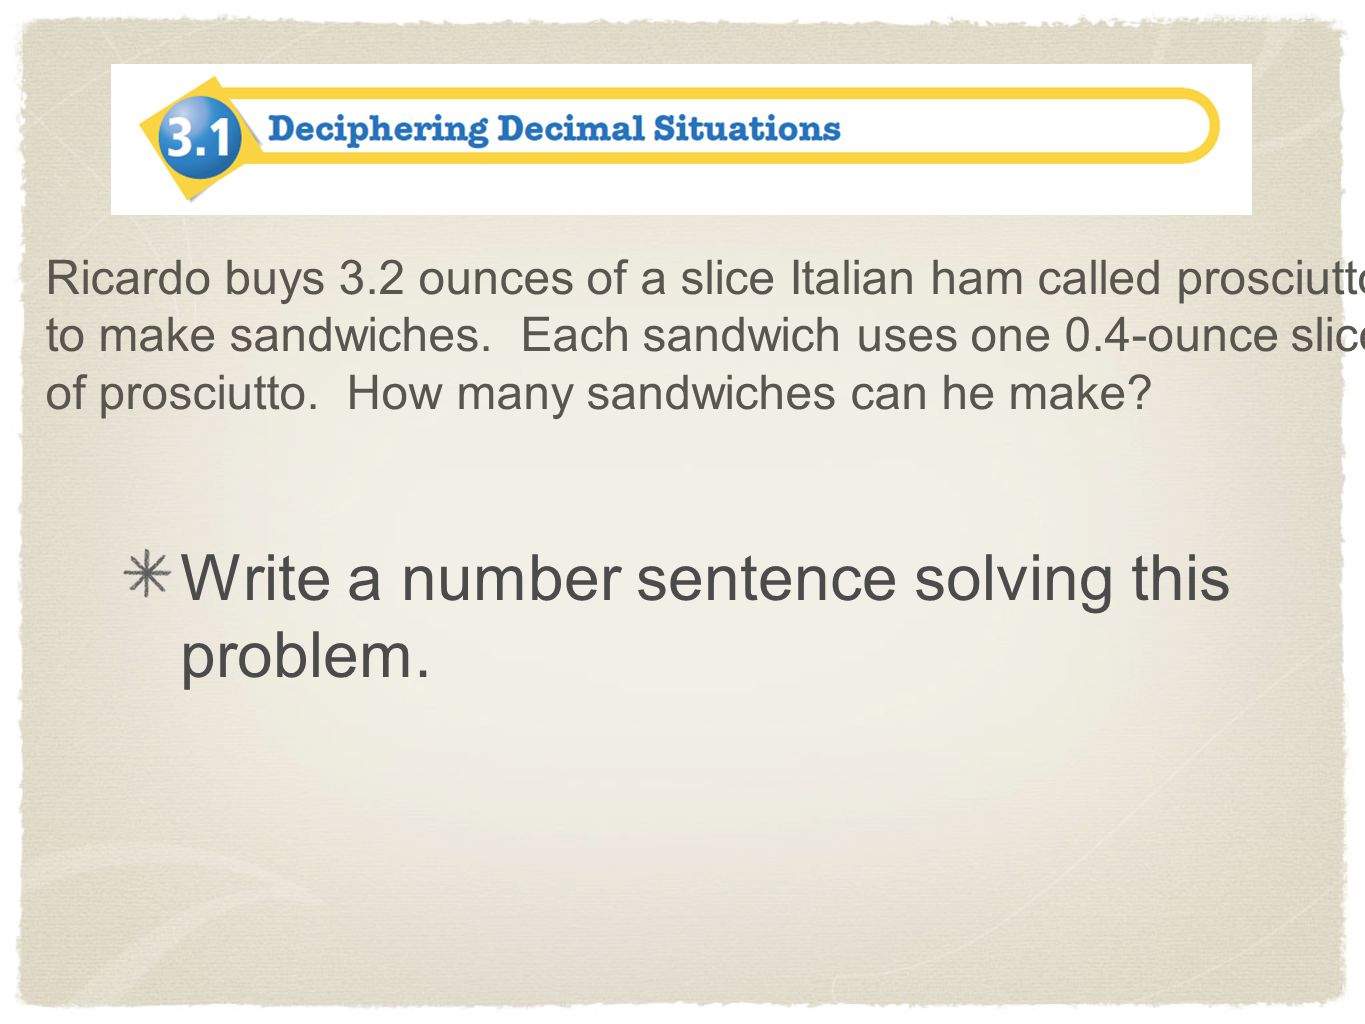 Write a number sentence solving this problem.